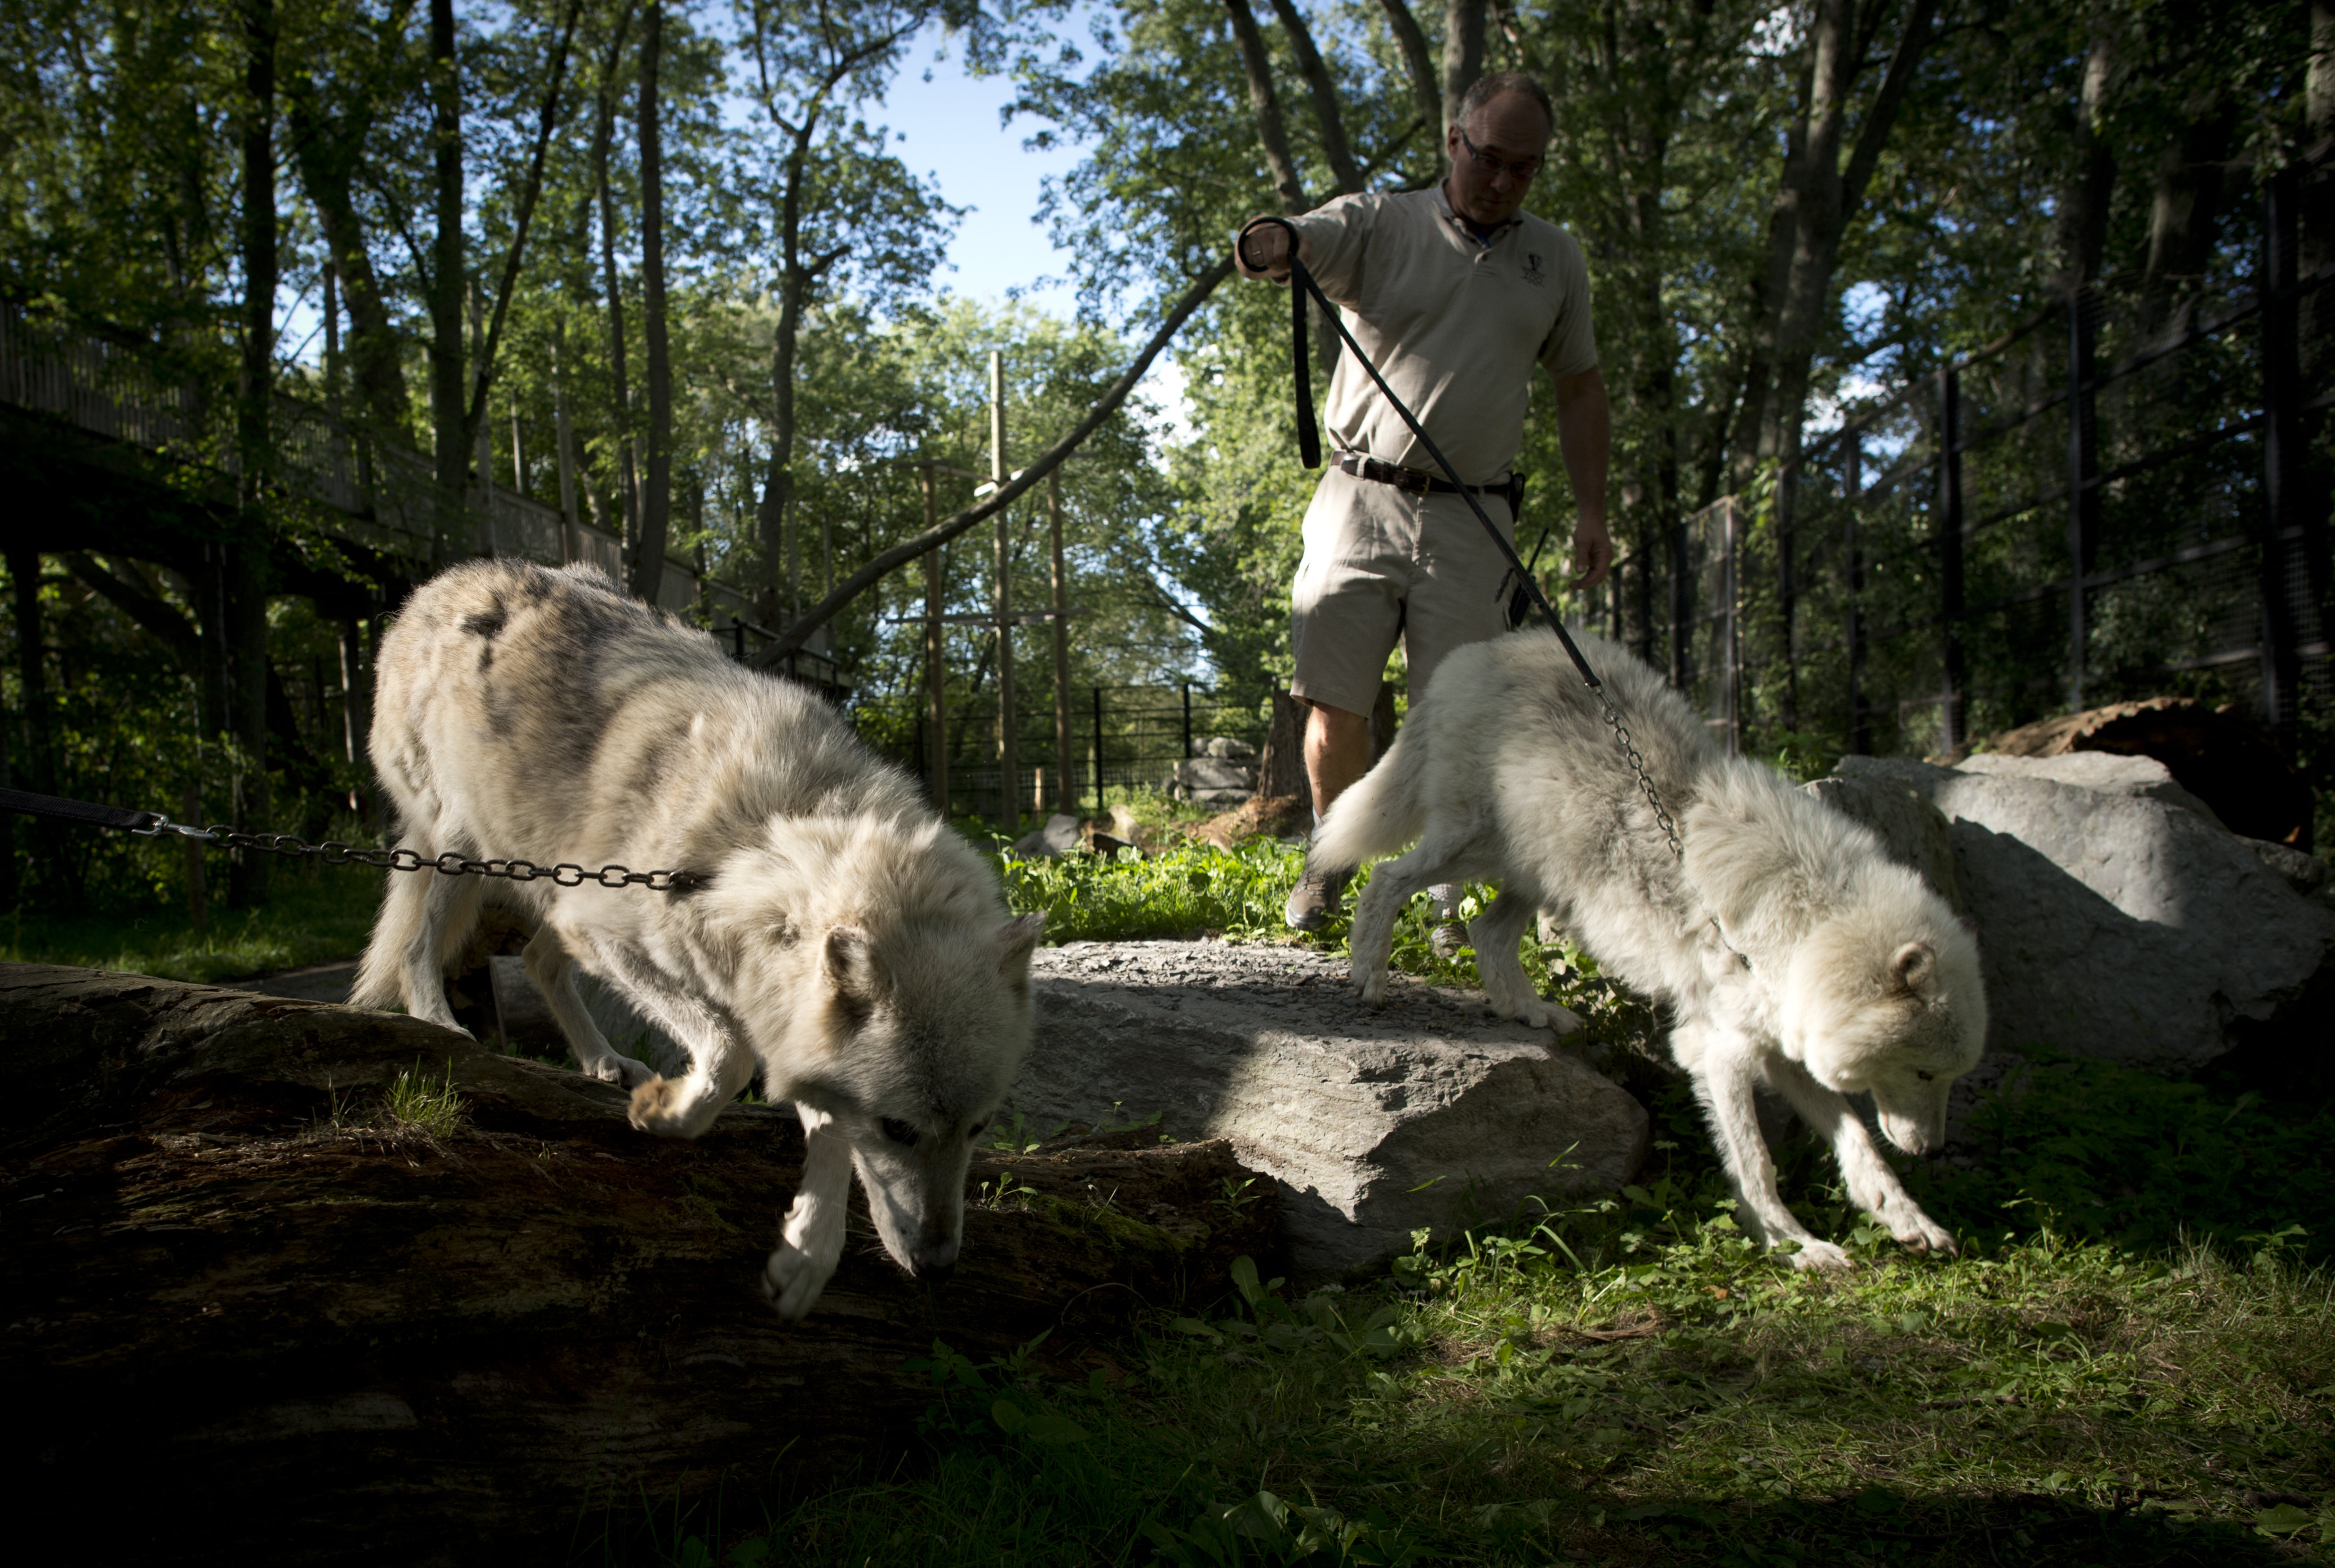 Michael Hackenberger transports an arctic wolf and a grey wolf their pen into the cat barn at the Bowmanville Zoo, August 17, 2012.